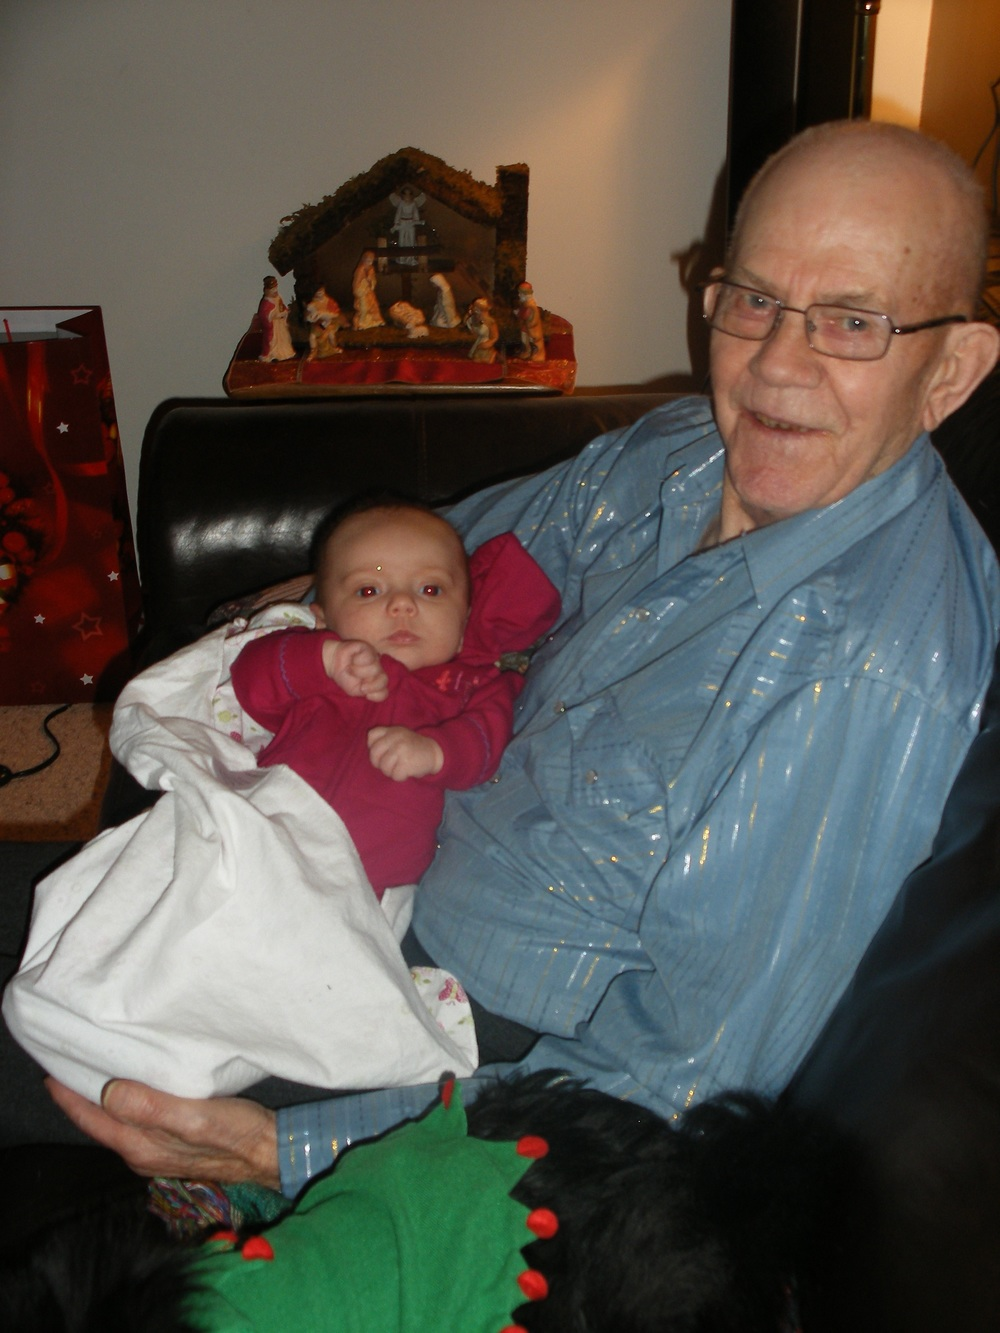 I also love this picture of my grandpa with my cute little baby Autumn